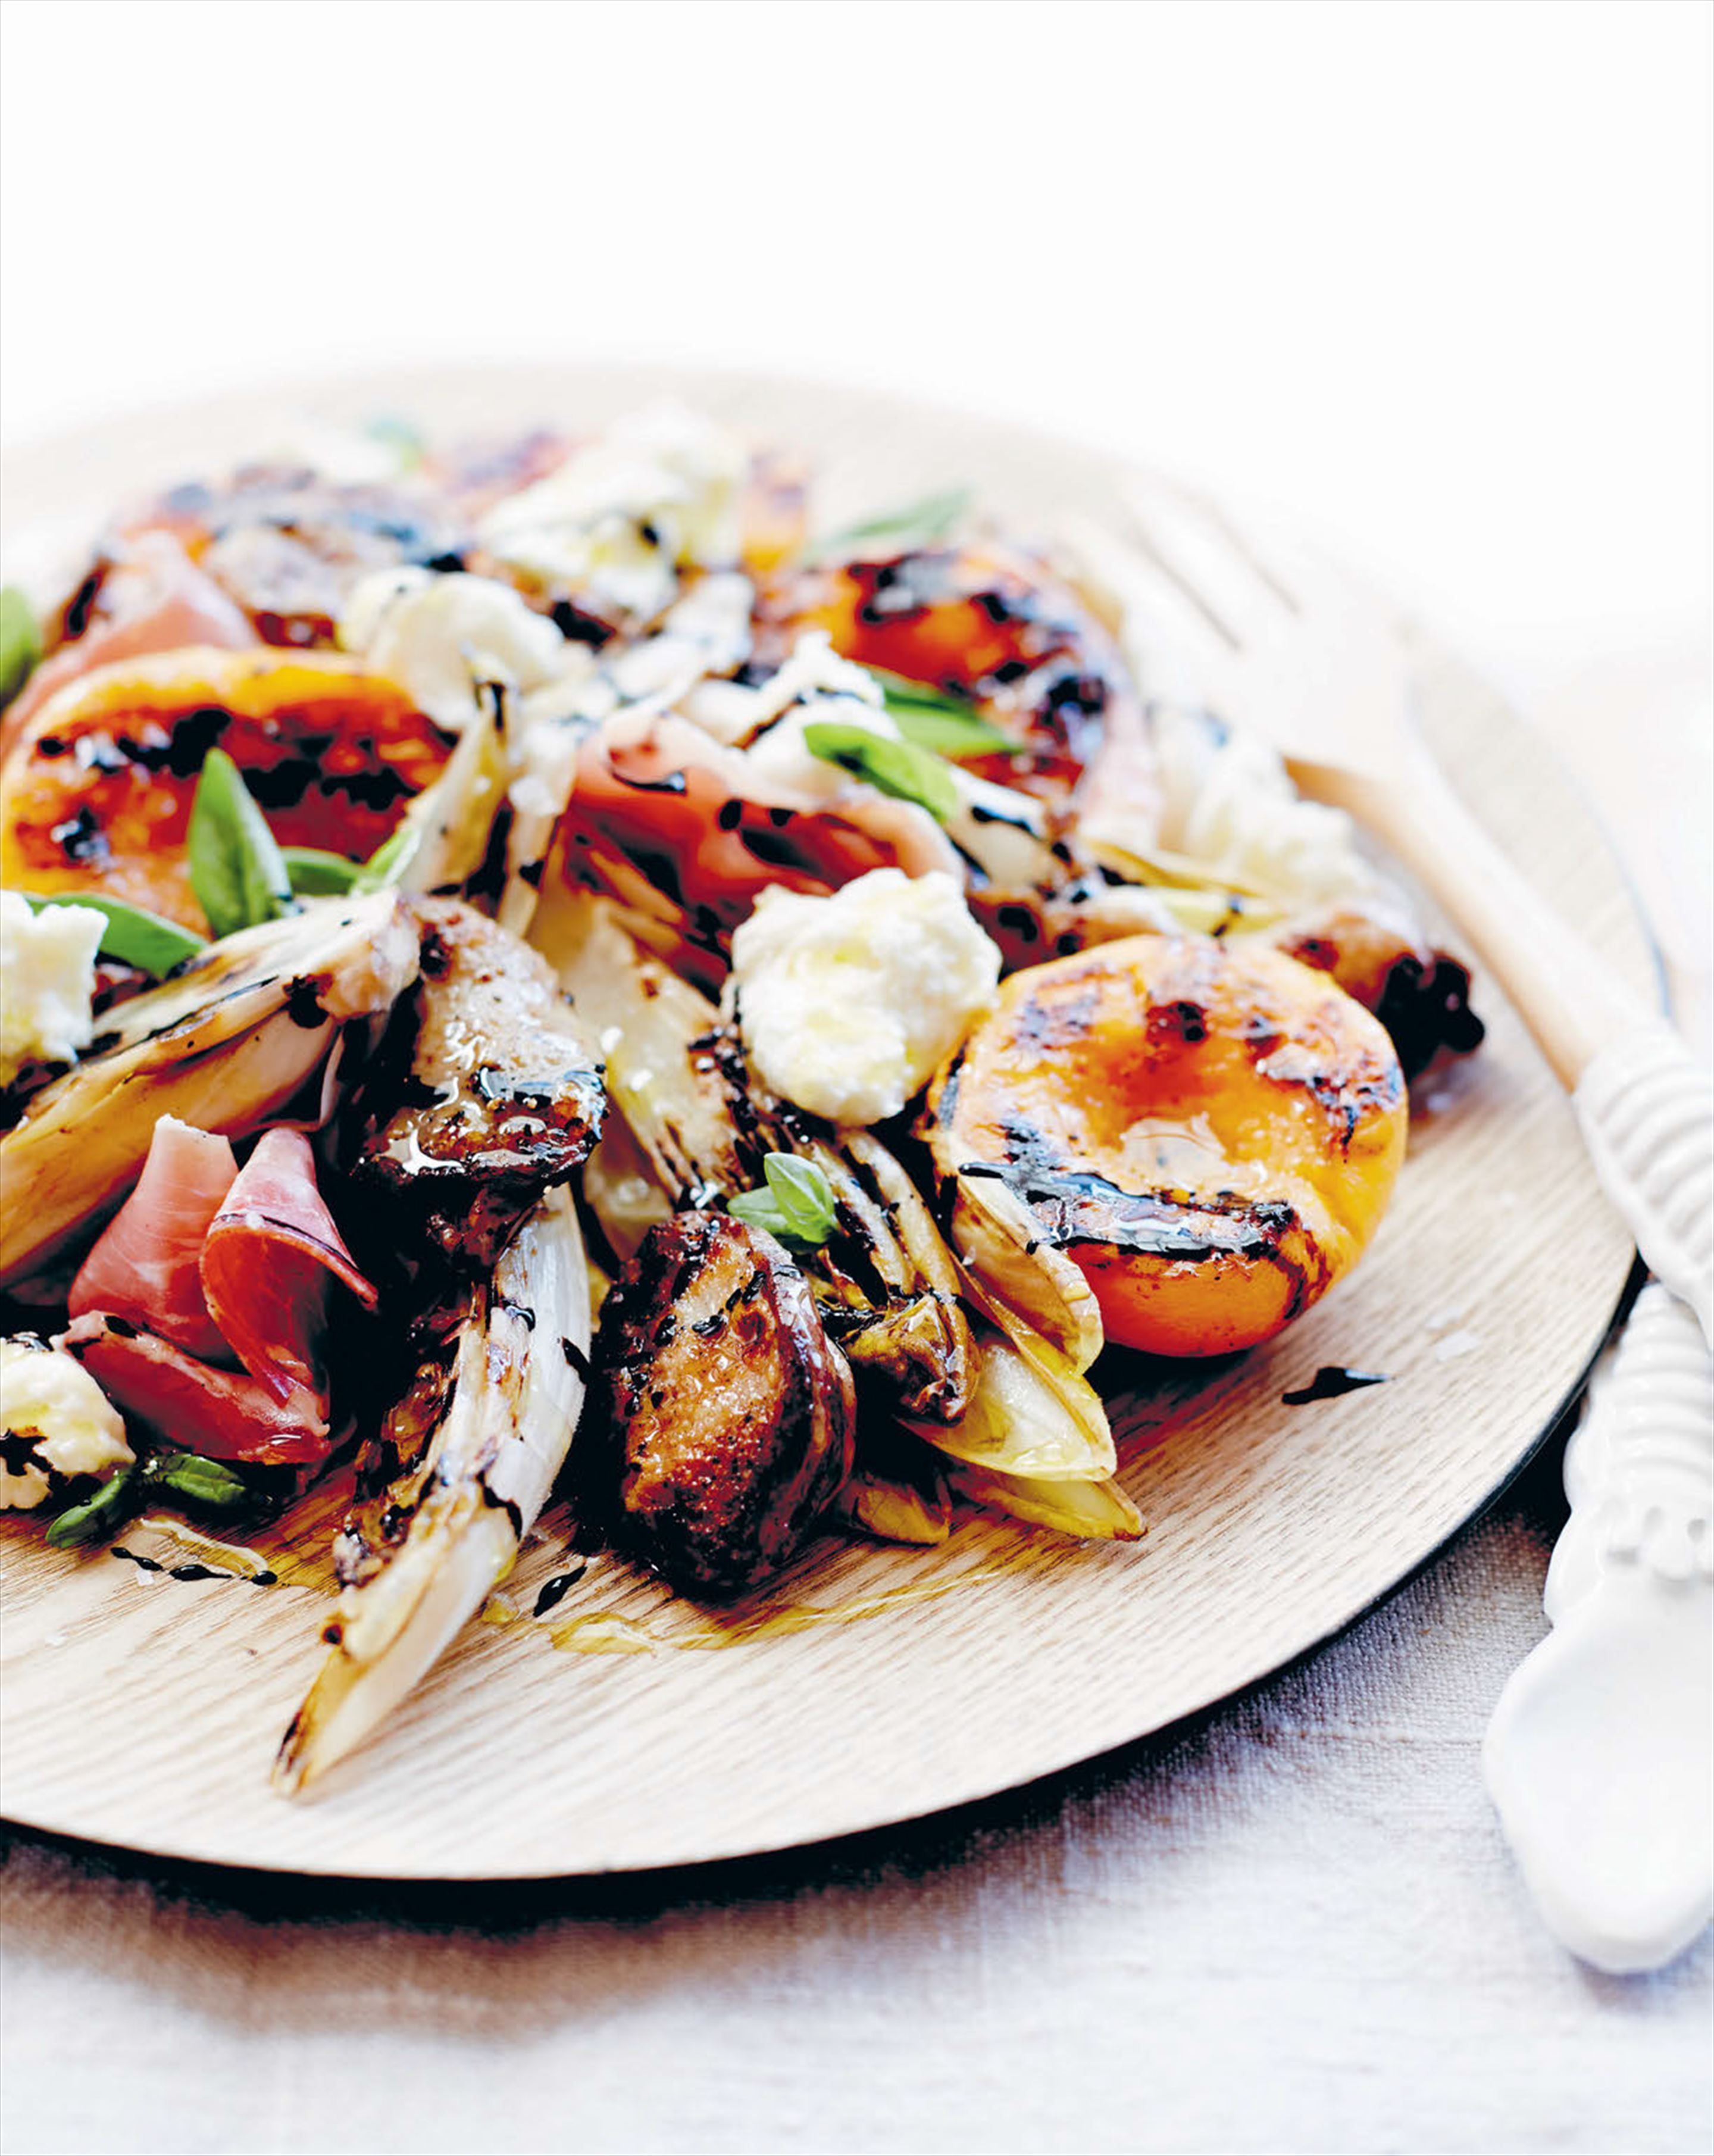 Quail, peach, witlof, prosciutto and buffalo mozzarella salad with balsamic glaze